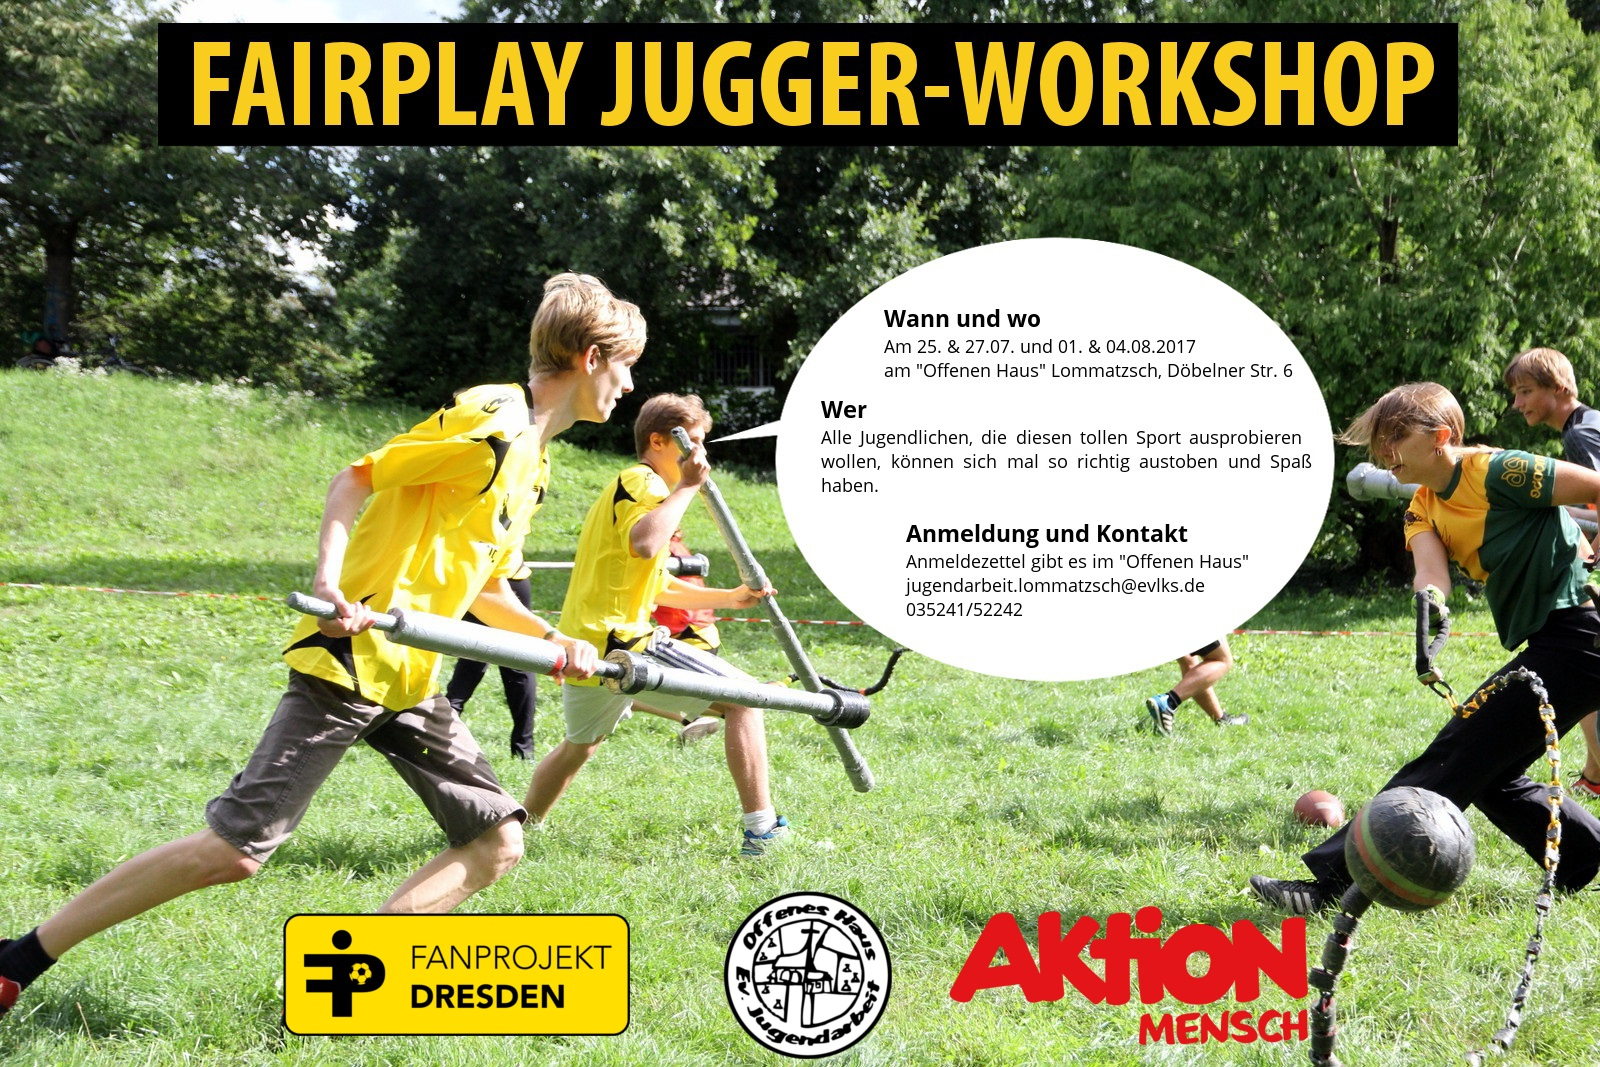 plakat-jugger-workshop